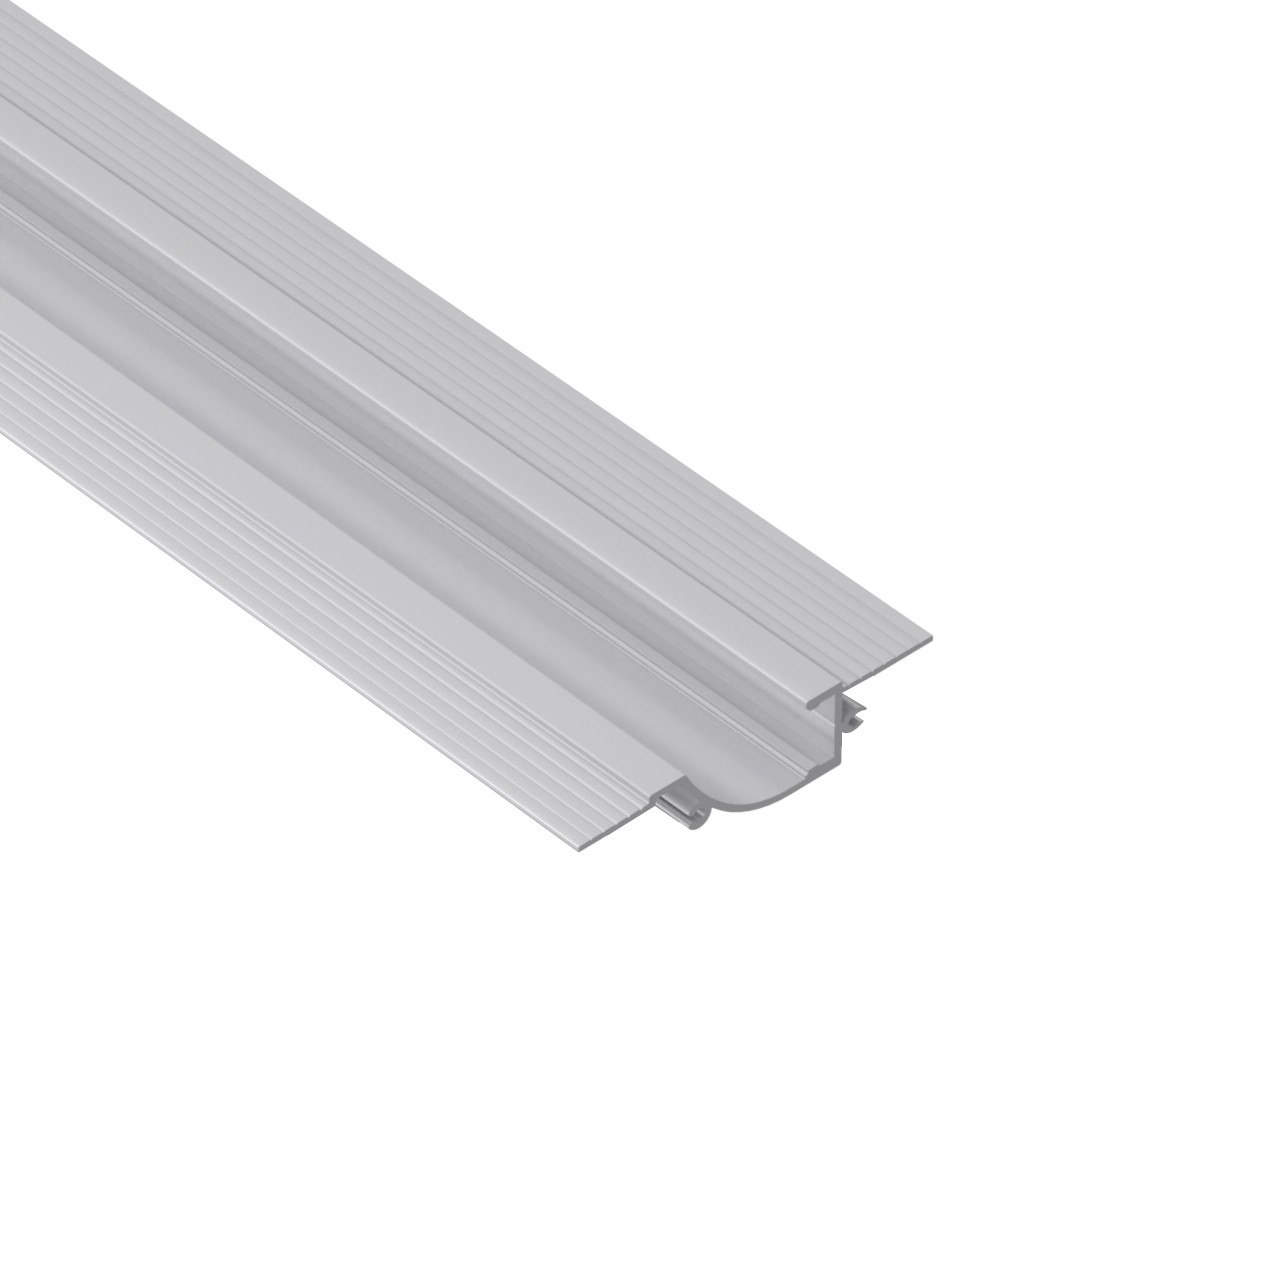 CTW1 Indirect LED Linear vertieften trimless Deckenleuchte Streifenprofil 86.5x19.6mm